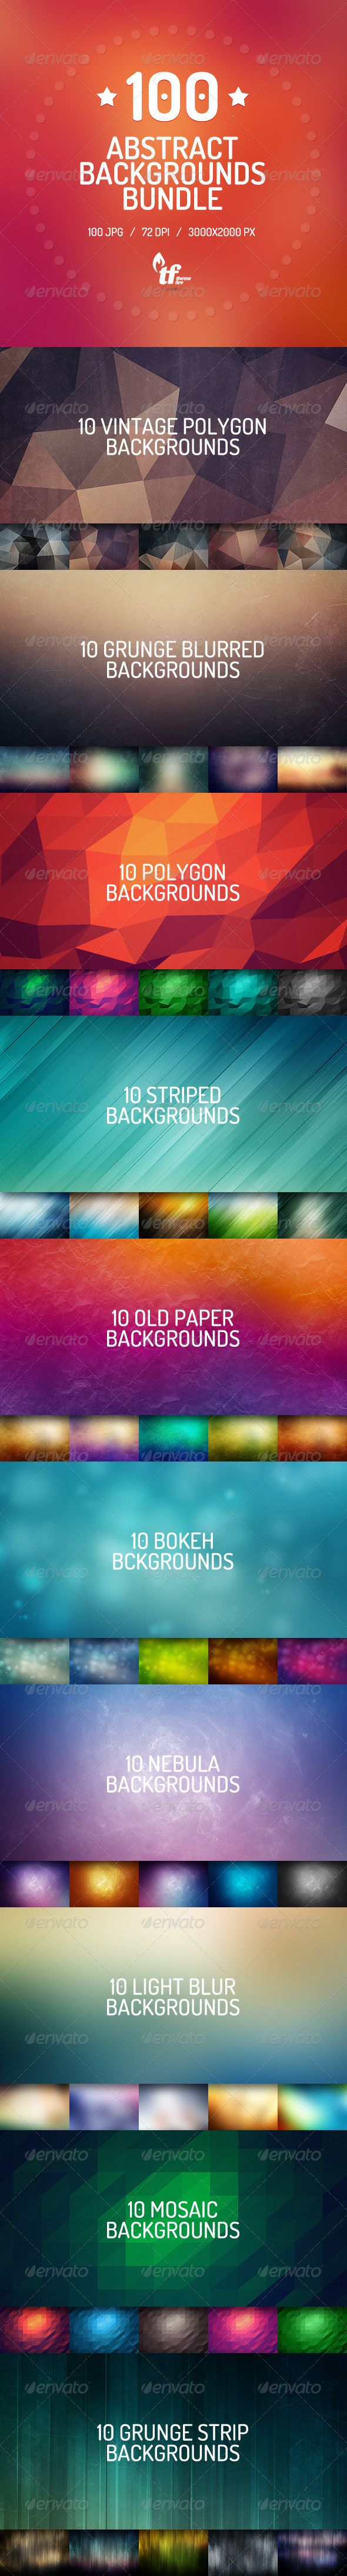 100 Abstract Backgrounds Bundle ...  abstract, background, blur, blur background, blurred, blurred background, bokeh, bokeh background, bright, bundle, geometric, geometric background, grunge, grunge background, nebula, nebula background, old, old background, old paper, paper, paper background, polygon, polygon background, space, stripped